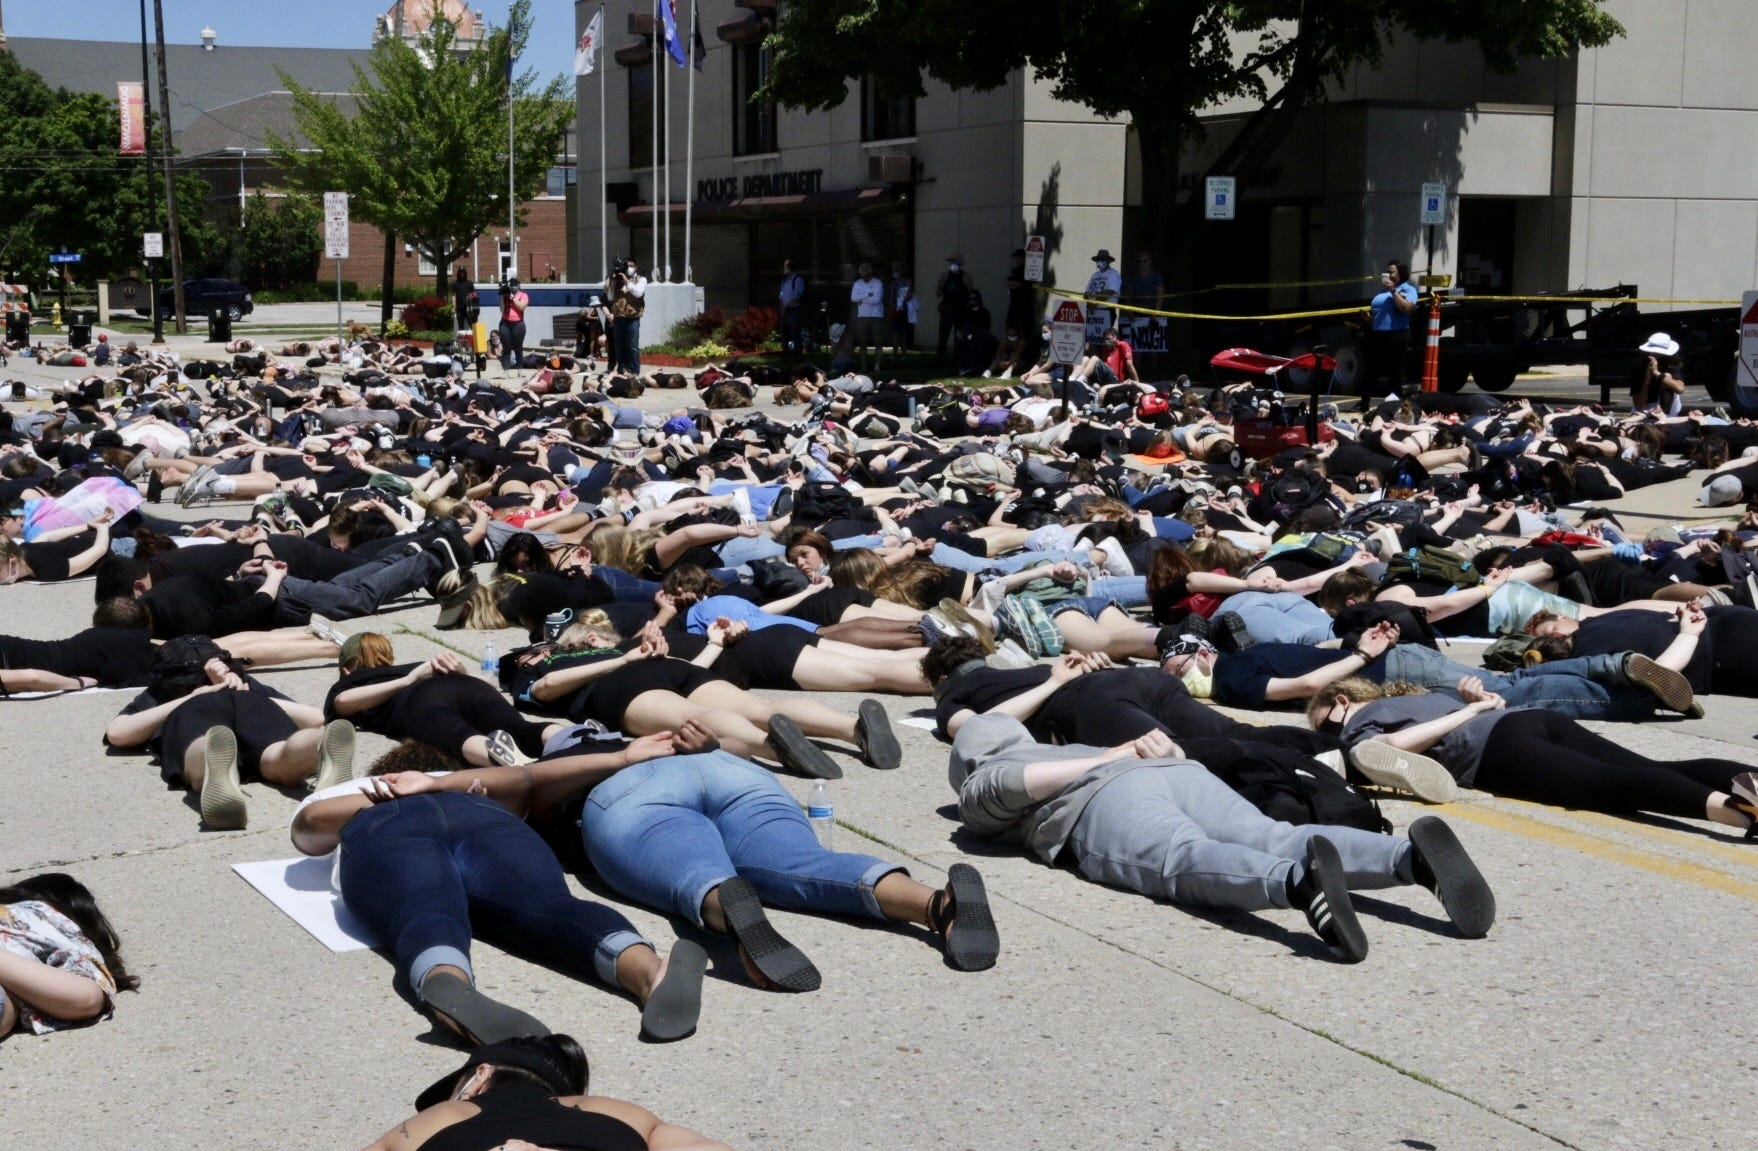 People lay on the concrete for 8 minutes and 40 seconds during in front of the Green Bay Police headquarters during the March for Black lives, Saturday, June 6, 2020, in Green Bay, Wis.